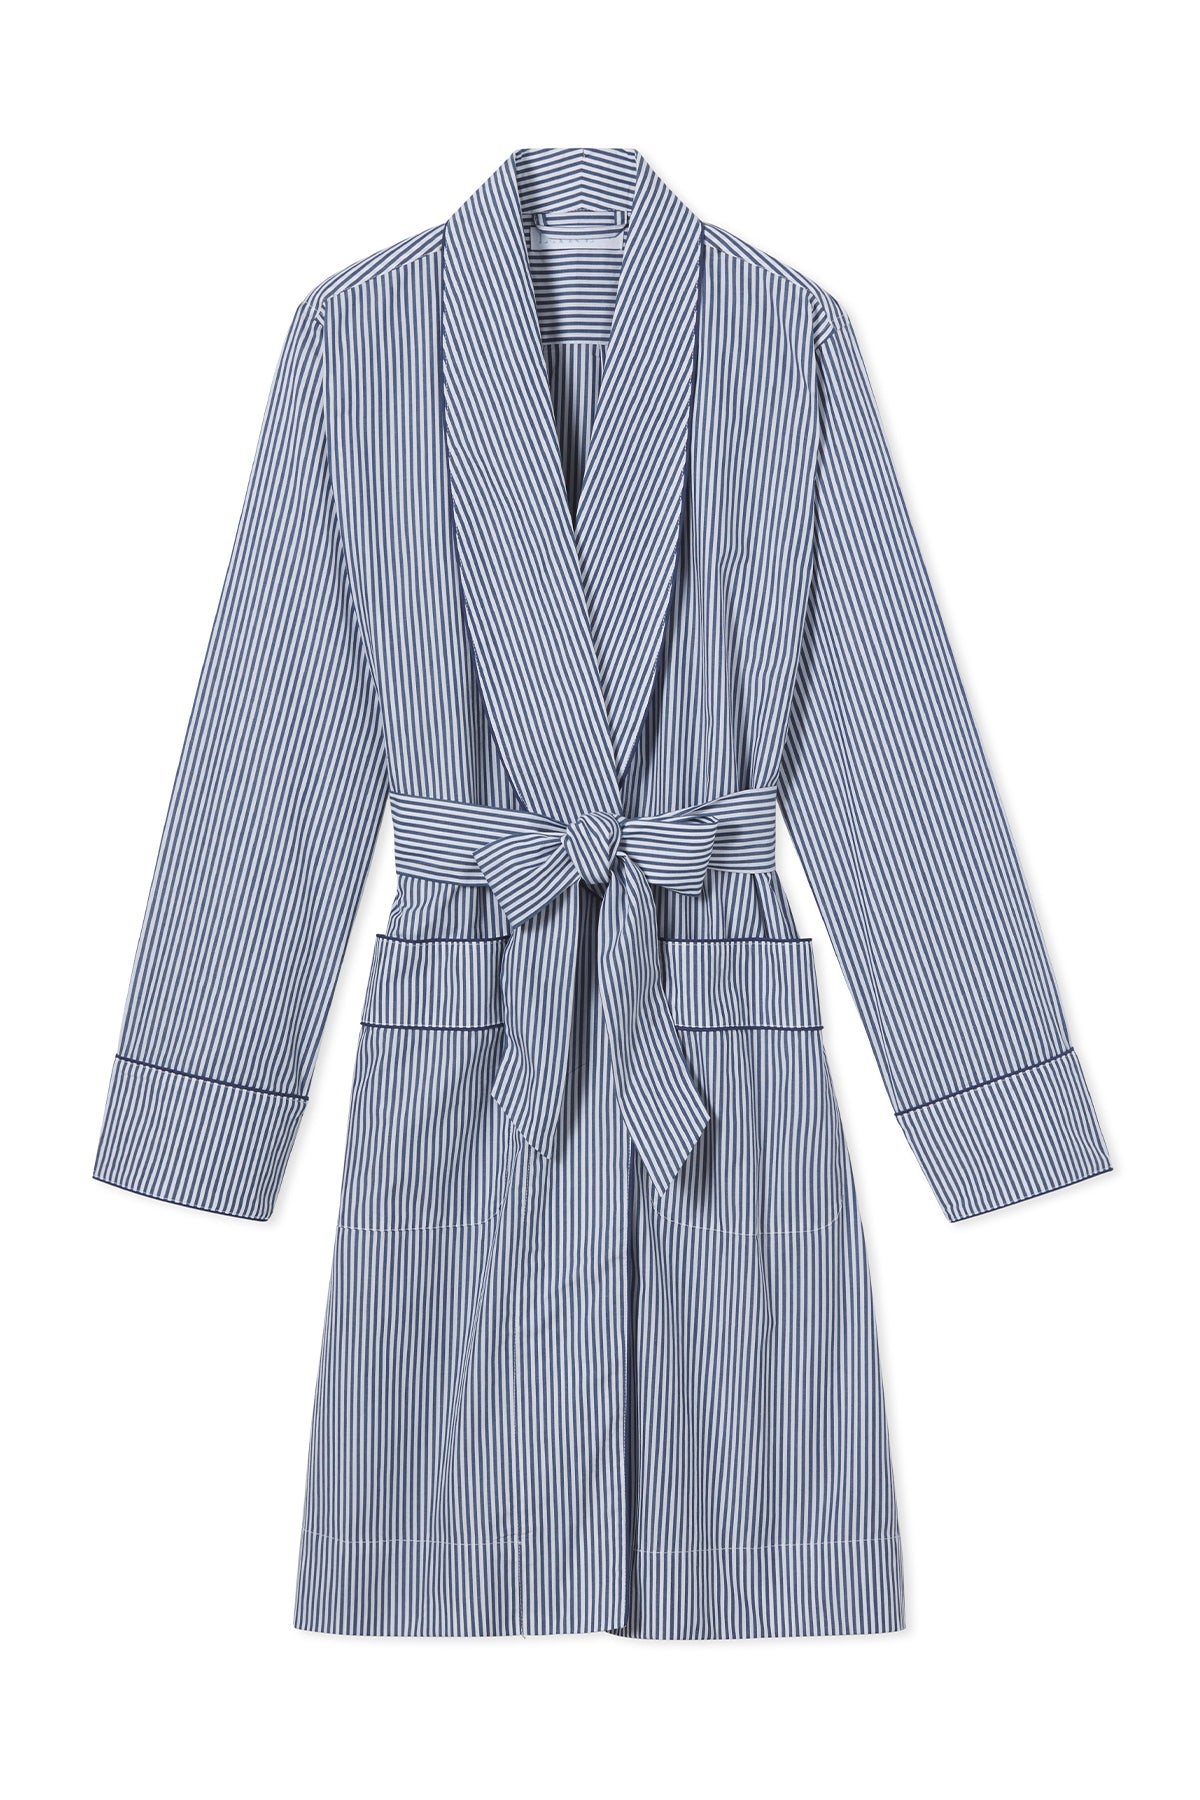 Poplin Robe in Navy Stripe